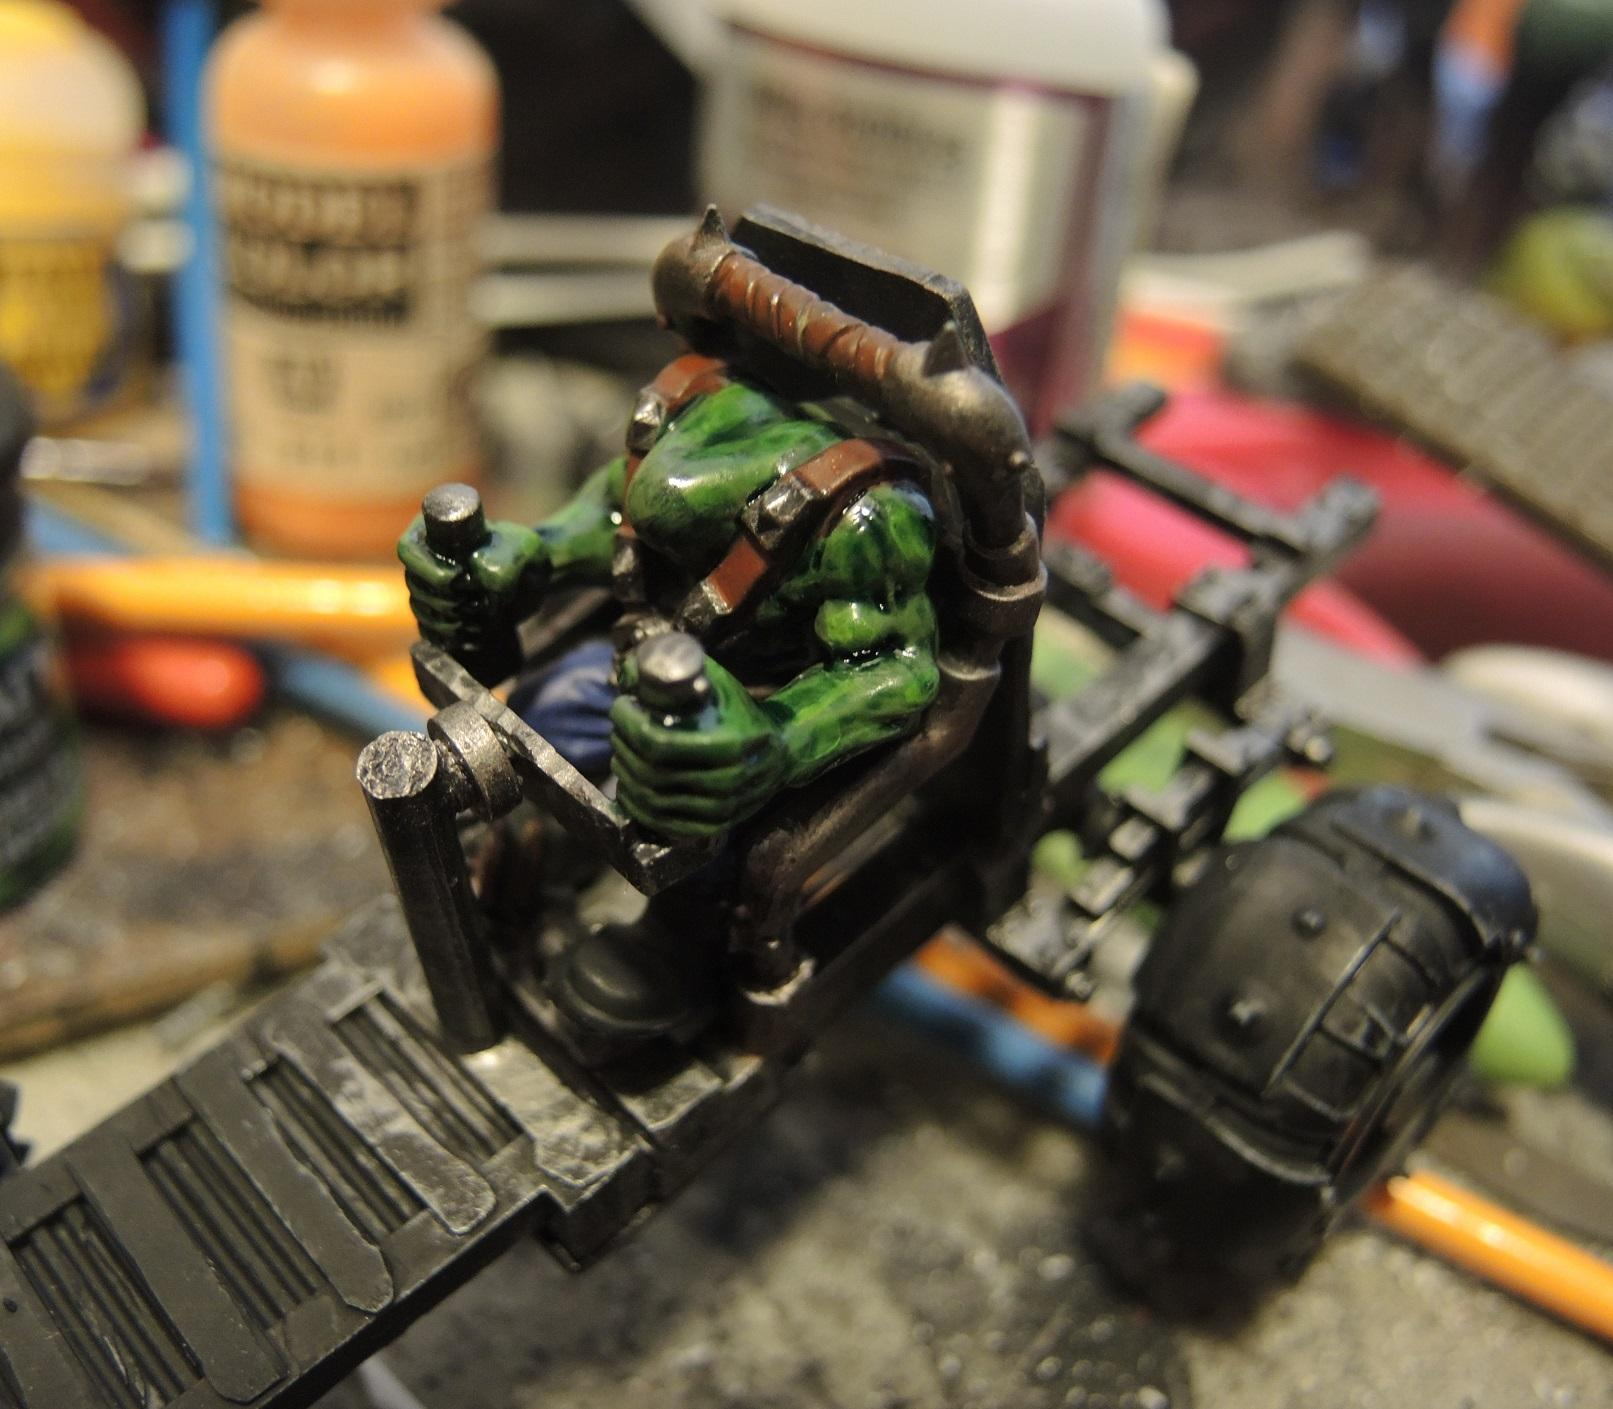 Badmoons, Boy, Boys, Dashboard, Deathskulls, Hordes, Mobs, Orks, Waaazag, Warbuggy, Warhammer 40,000, Work In Progress